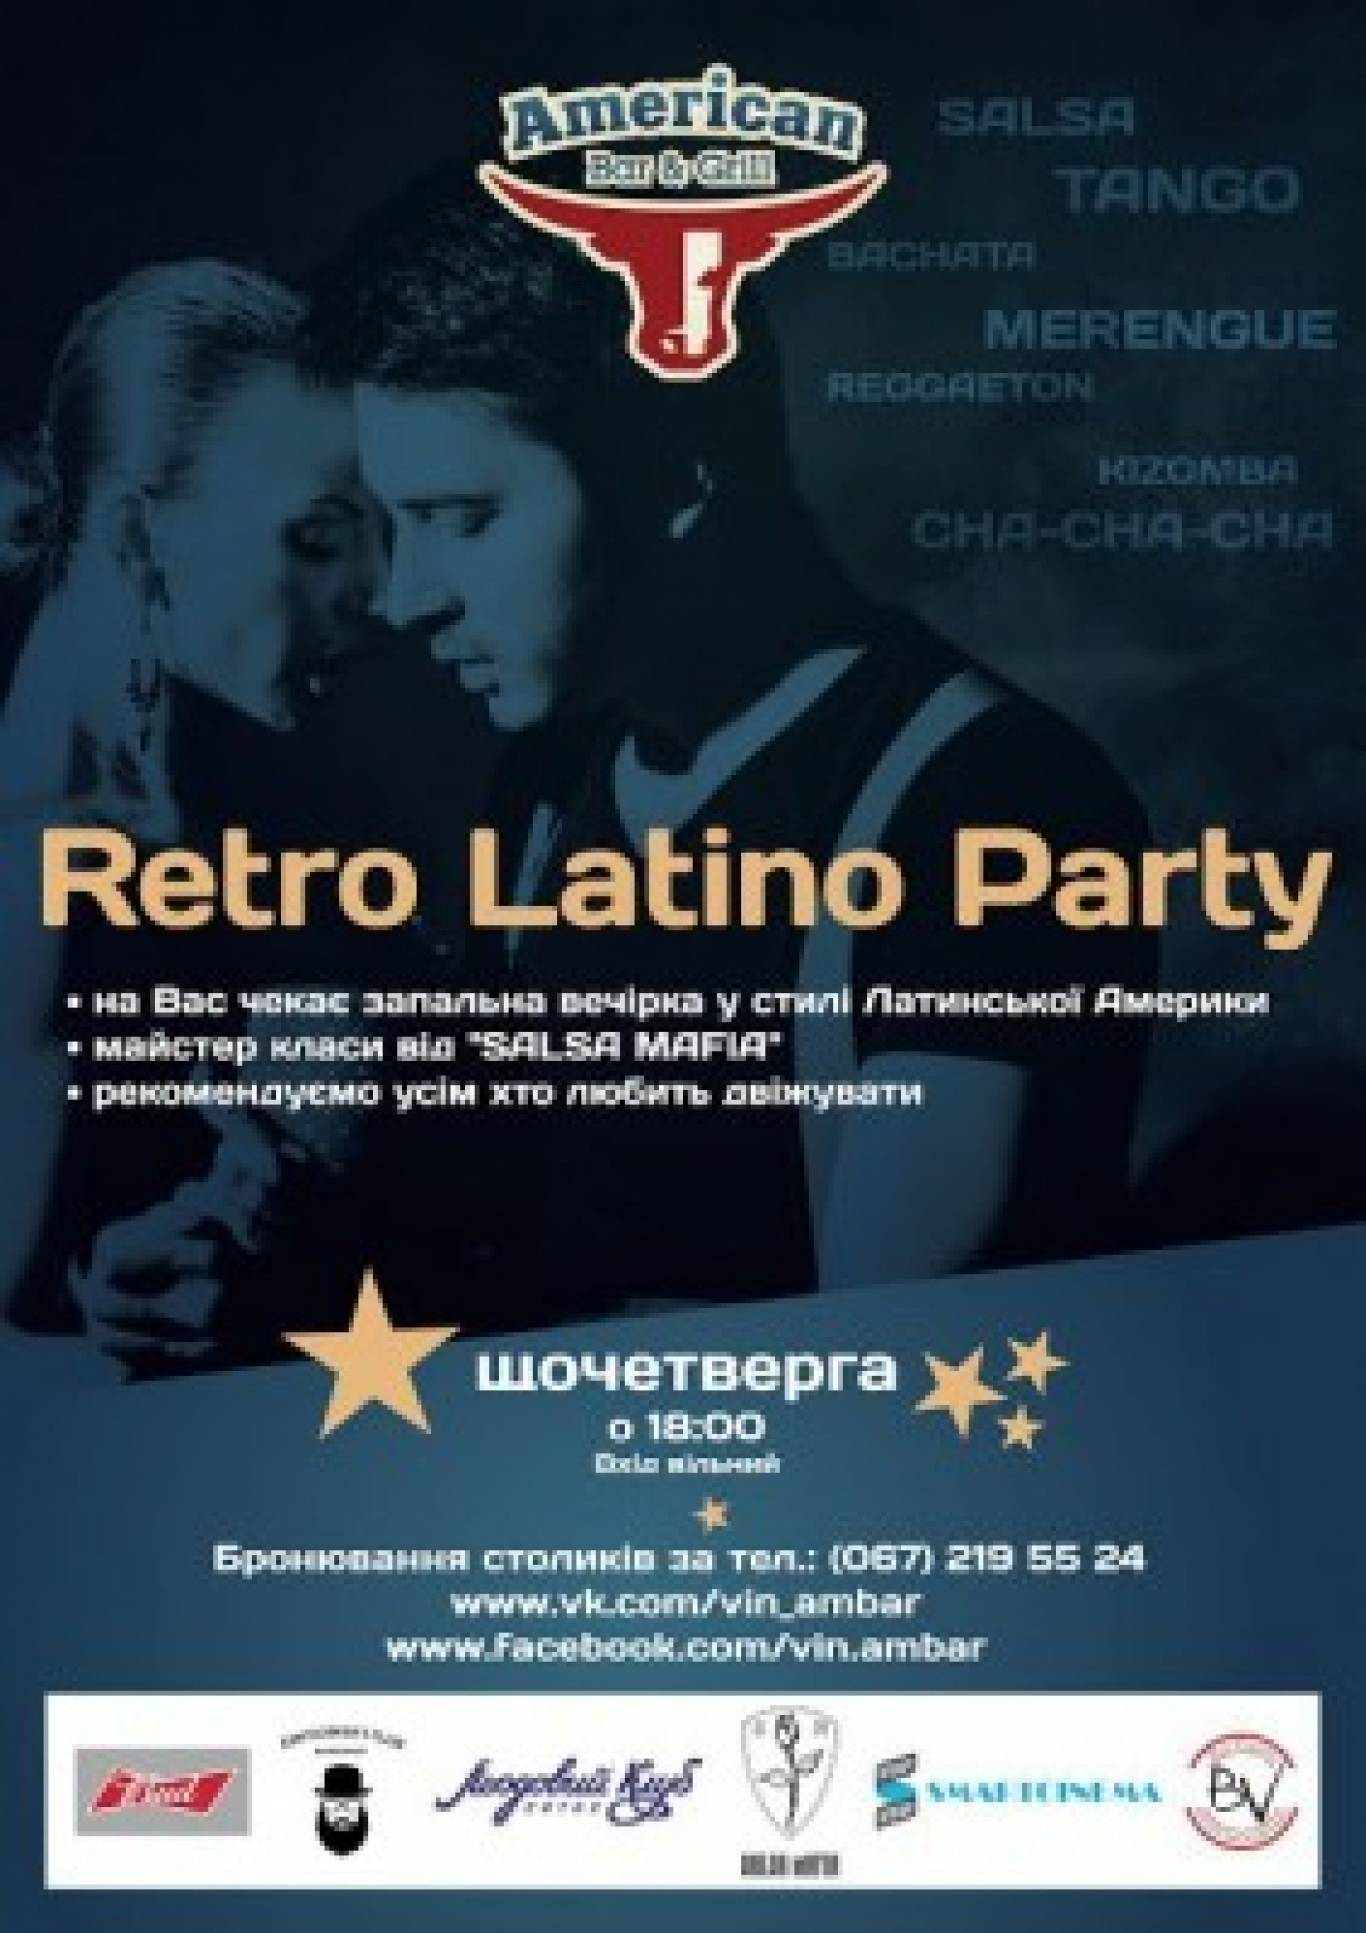 Retro Latino Party